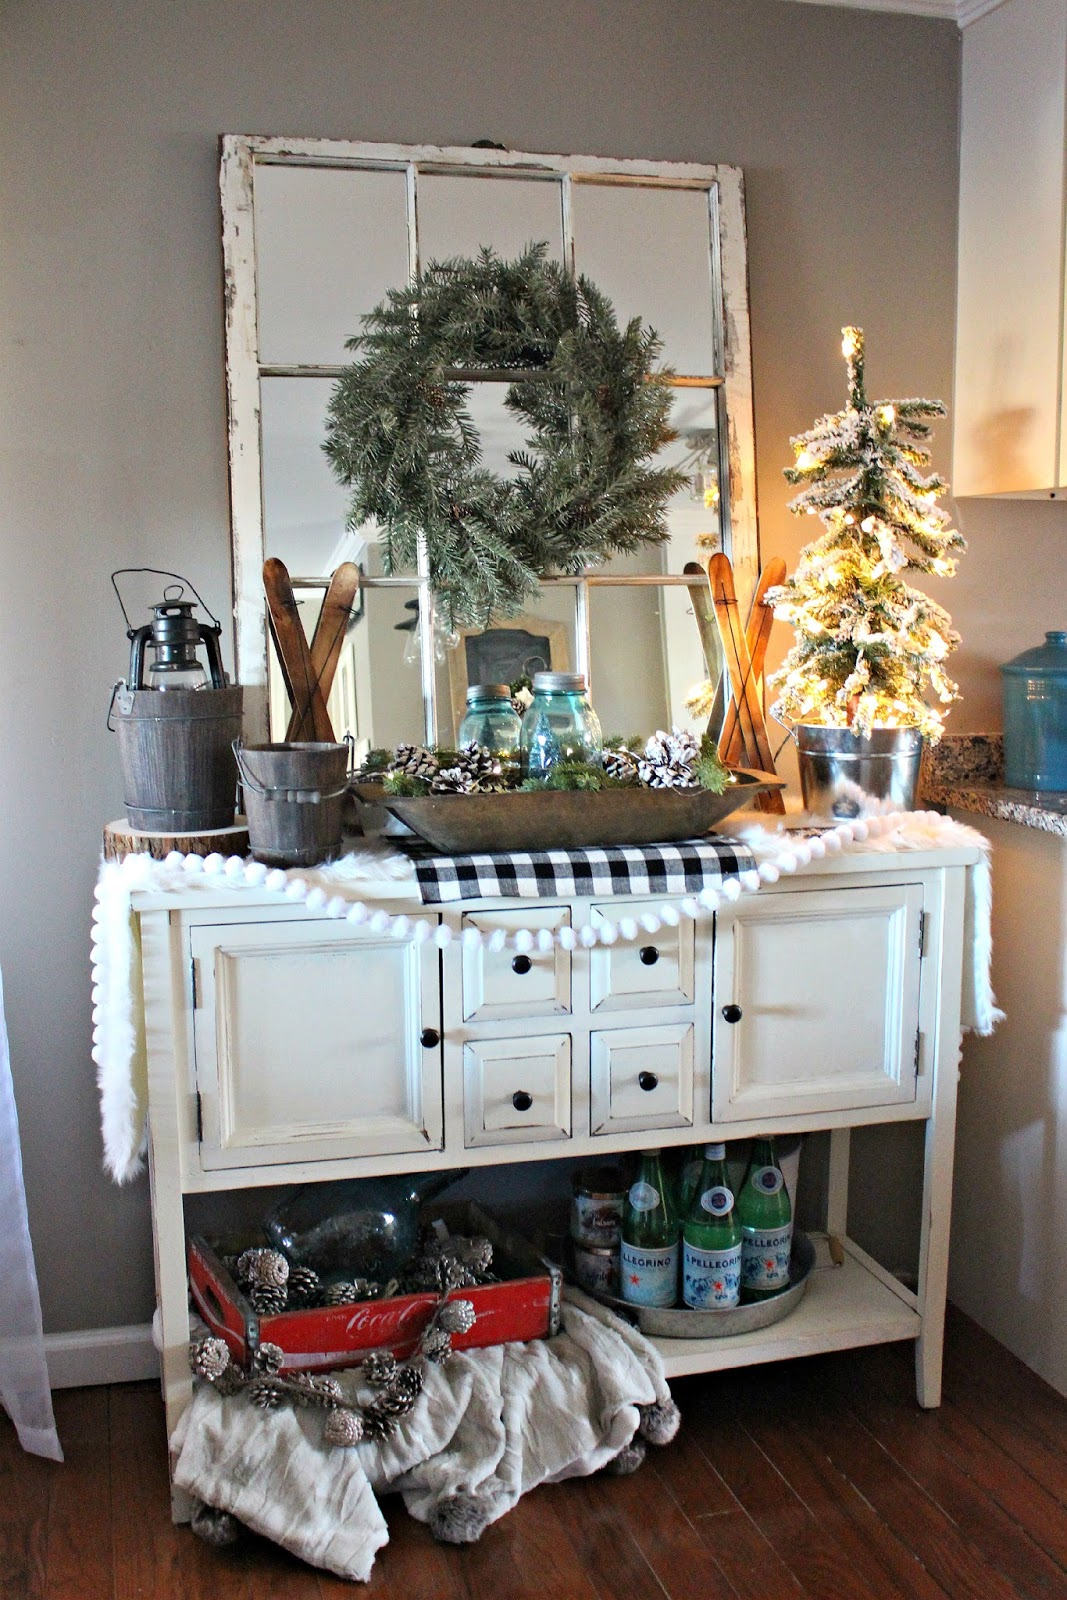 Dining room winter decor the glam farmhouse for Glam dining room ideas